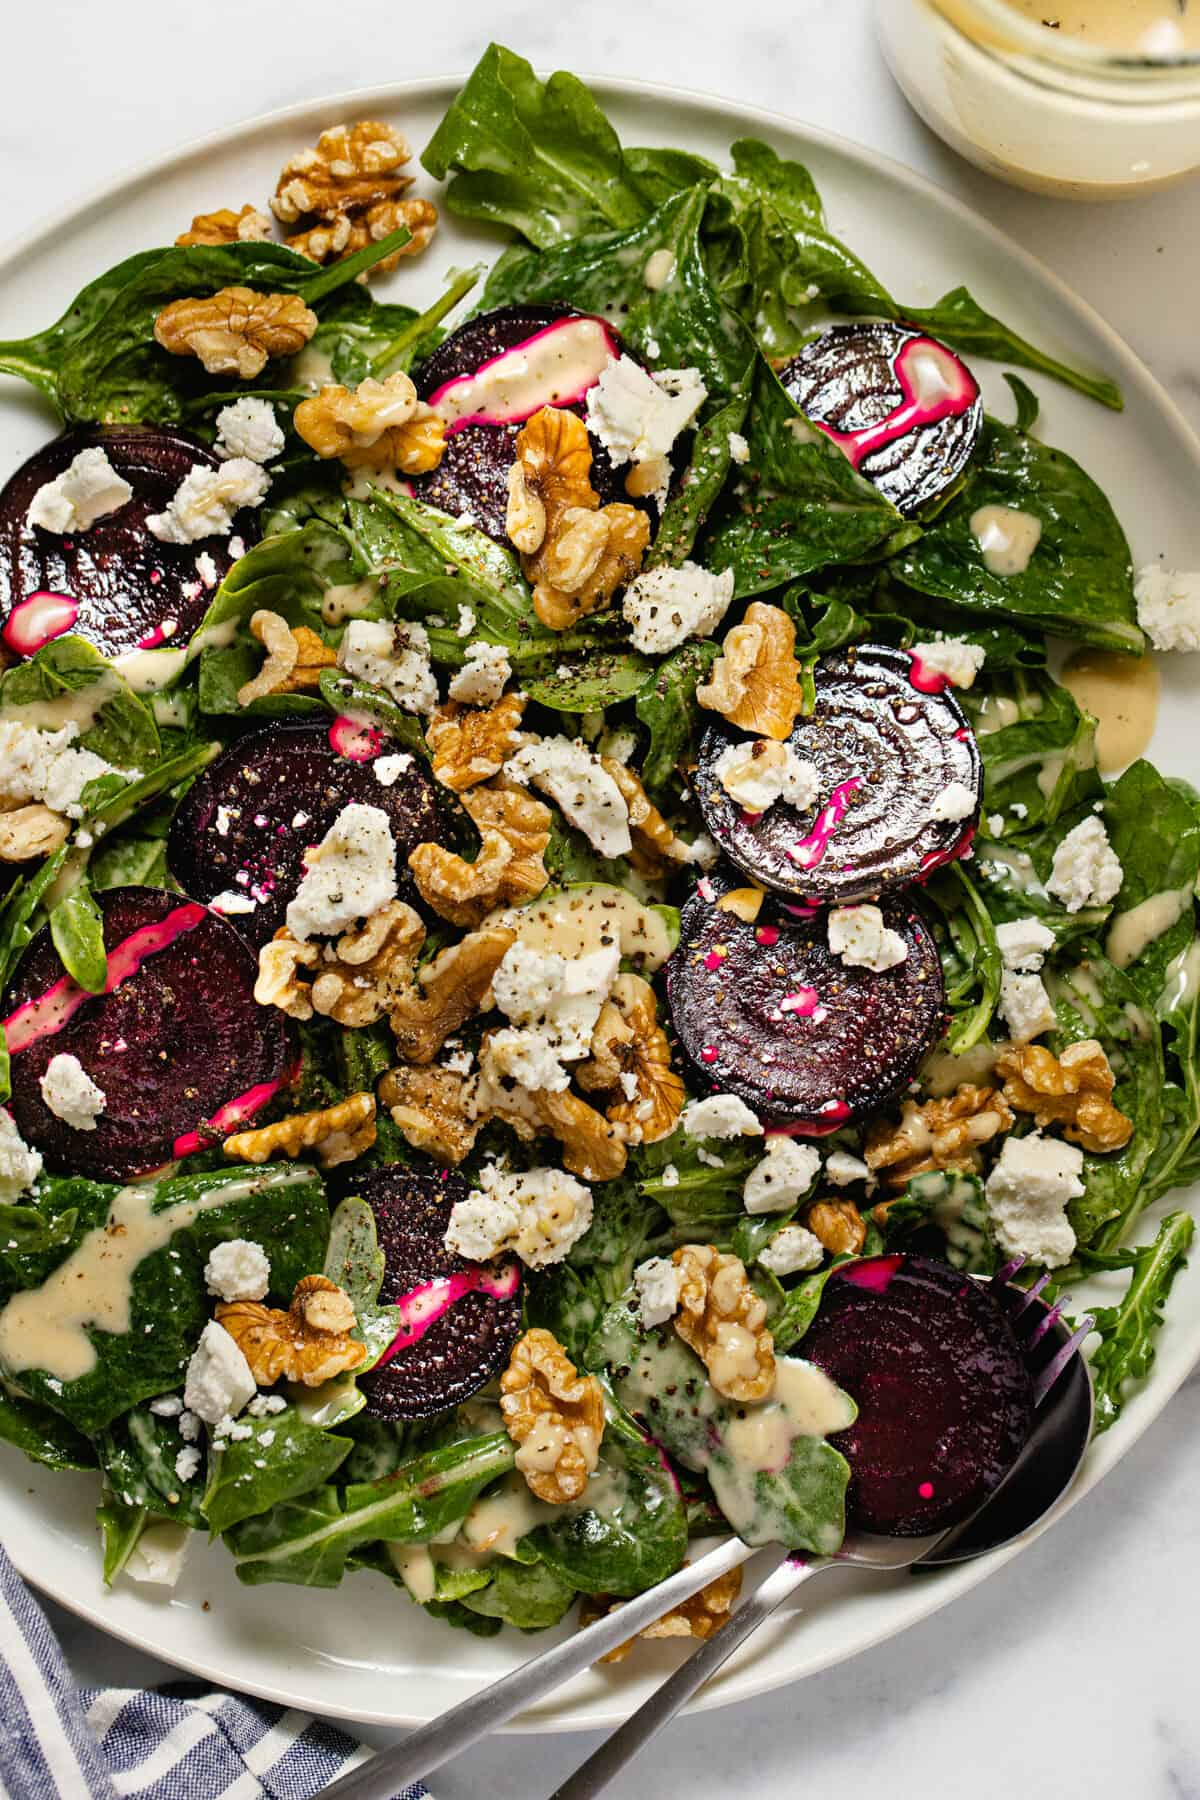 White plate filled with roasted beet salad with feta